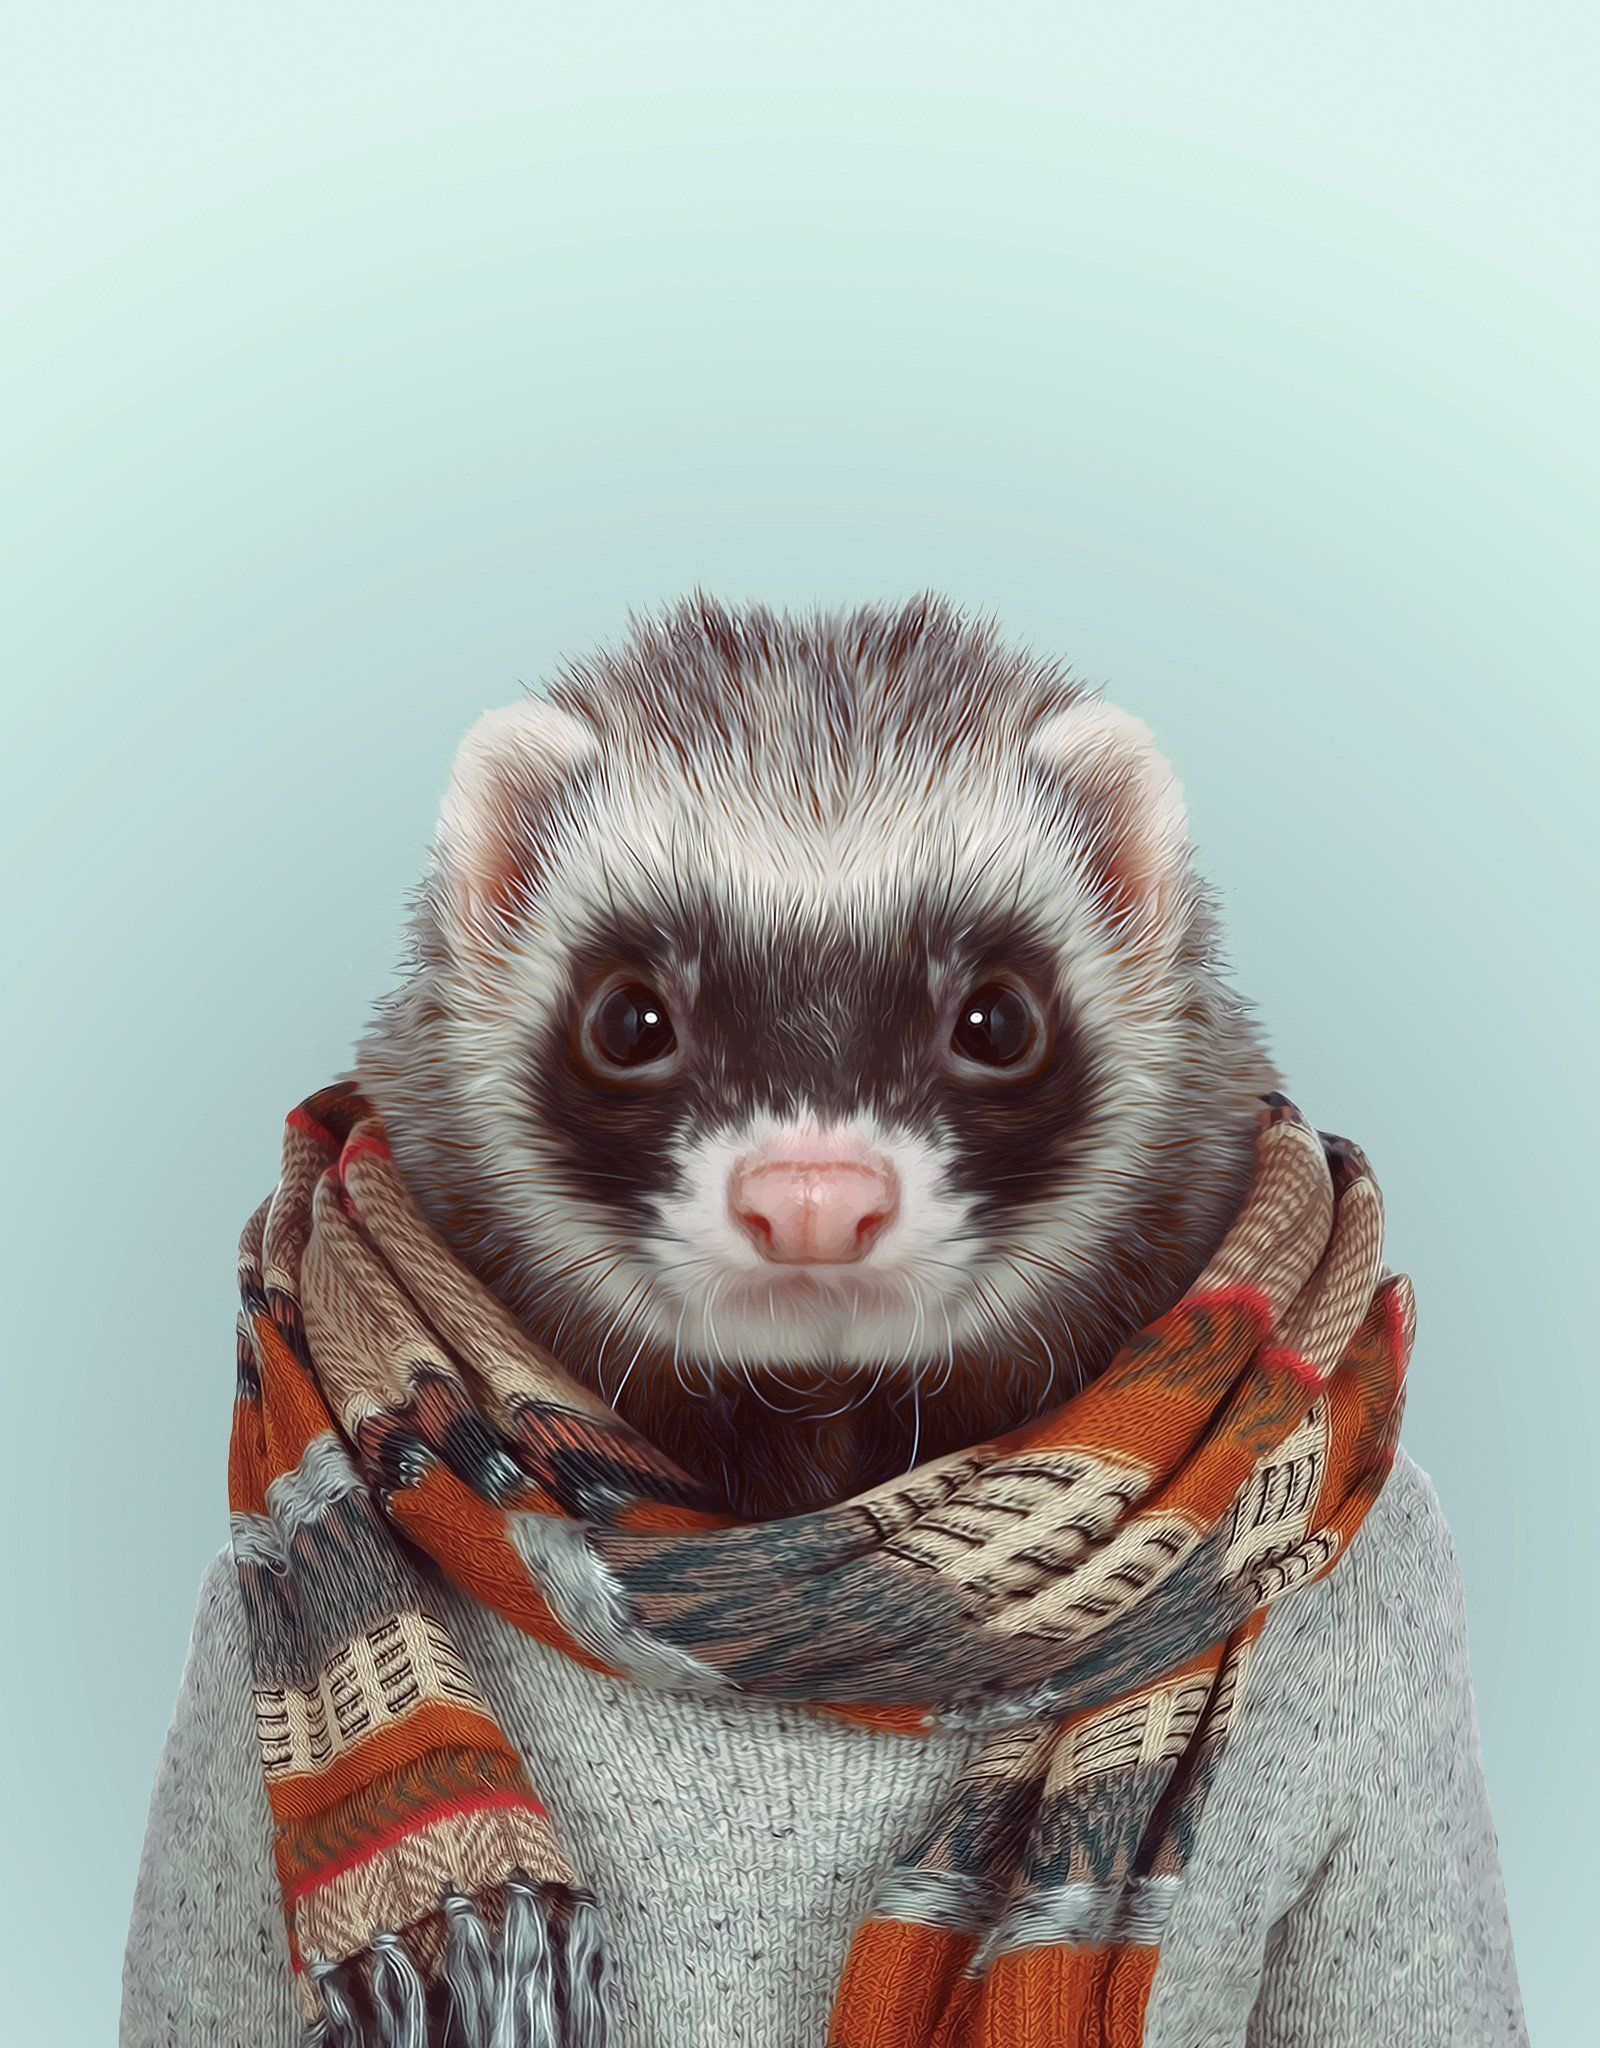 Zoo Portrait: Ferret! Click to view entire shot. Zoo Portraits by artist  Yago Partal combine photography with fashion illustration where Partal's  photos of ...